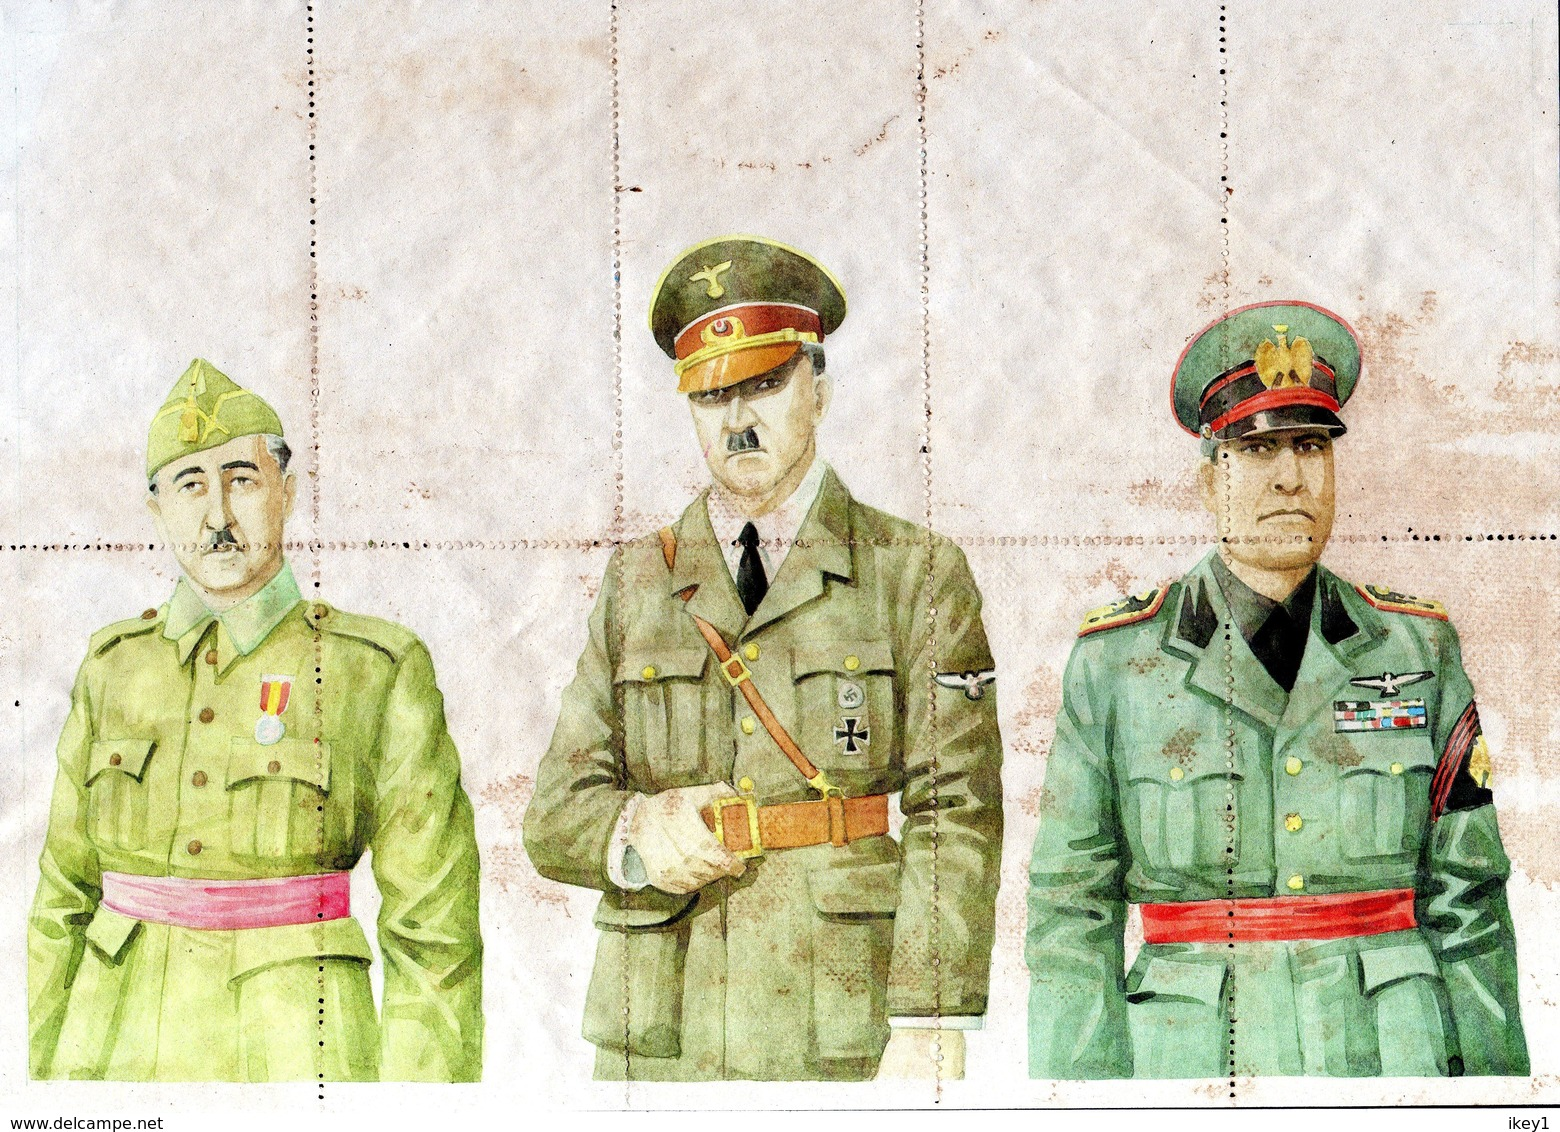 10936--GERMAN EMPIRE-SPAIN-MILITARY PROPAGANDA CIVIL WAR,RATION COUPONS A.HITLER-FRANCO-MUSSOLINI.1942.WWII.Cupones Rac - Allemagne